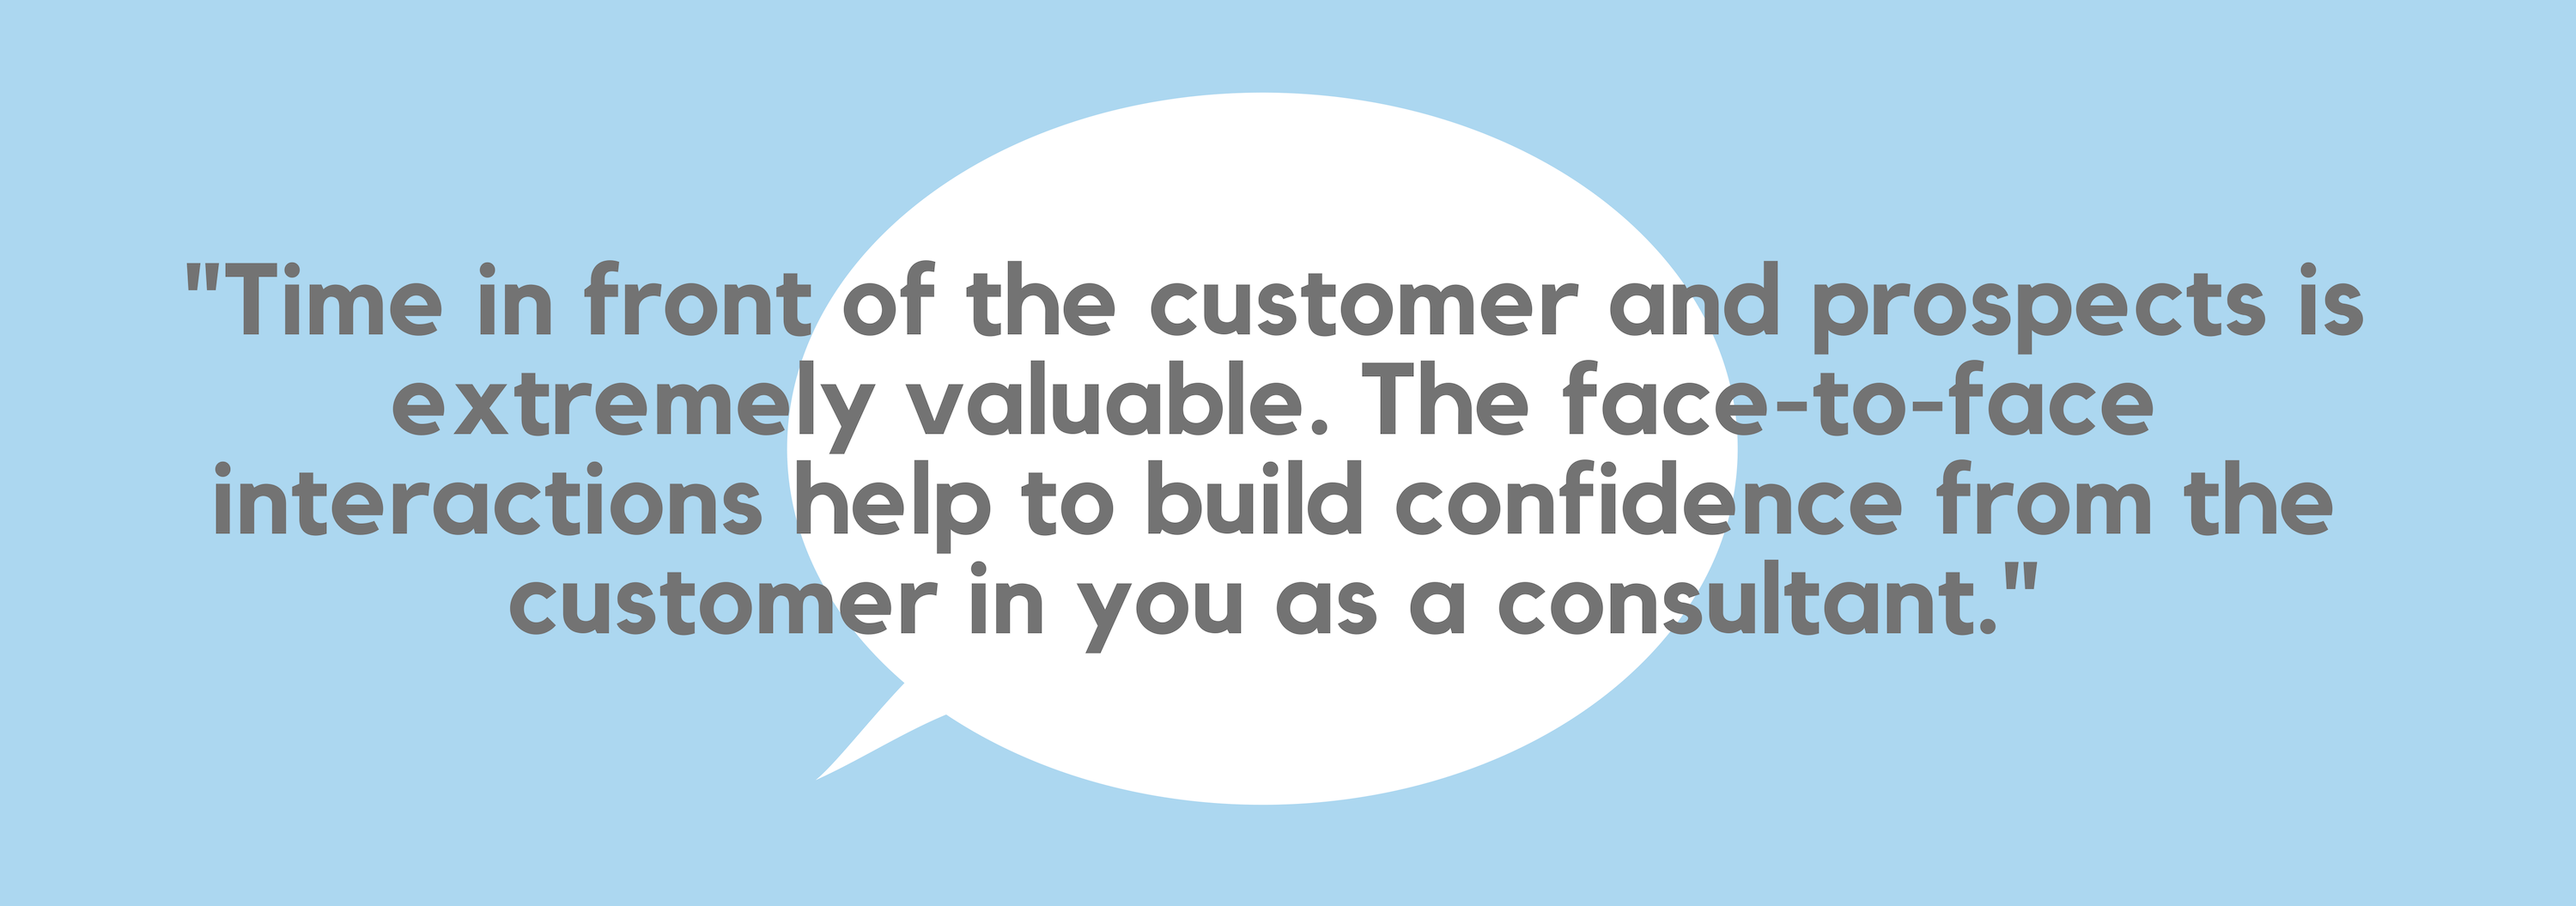 _Time in front of the customer and prospects is extremely valuable. The face to face interactions help to build confidence from the customer in you as a consultant. Additionally, in my traditional role as a Project_P